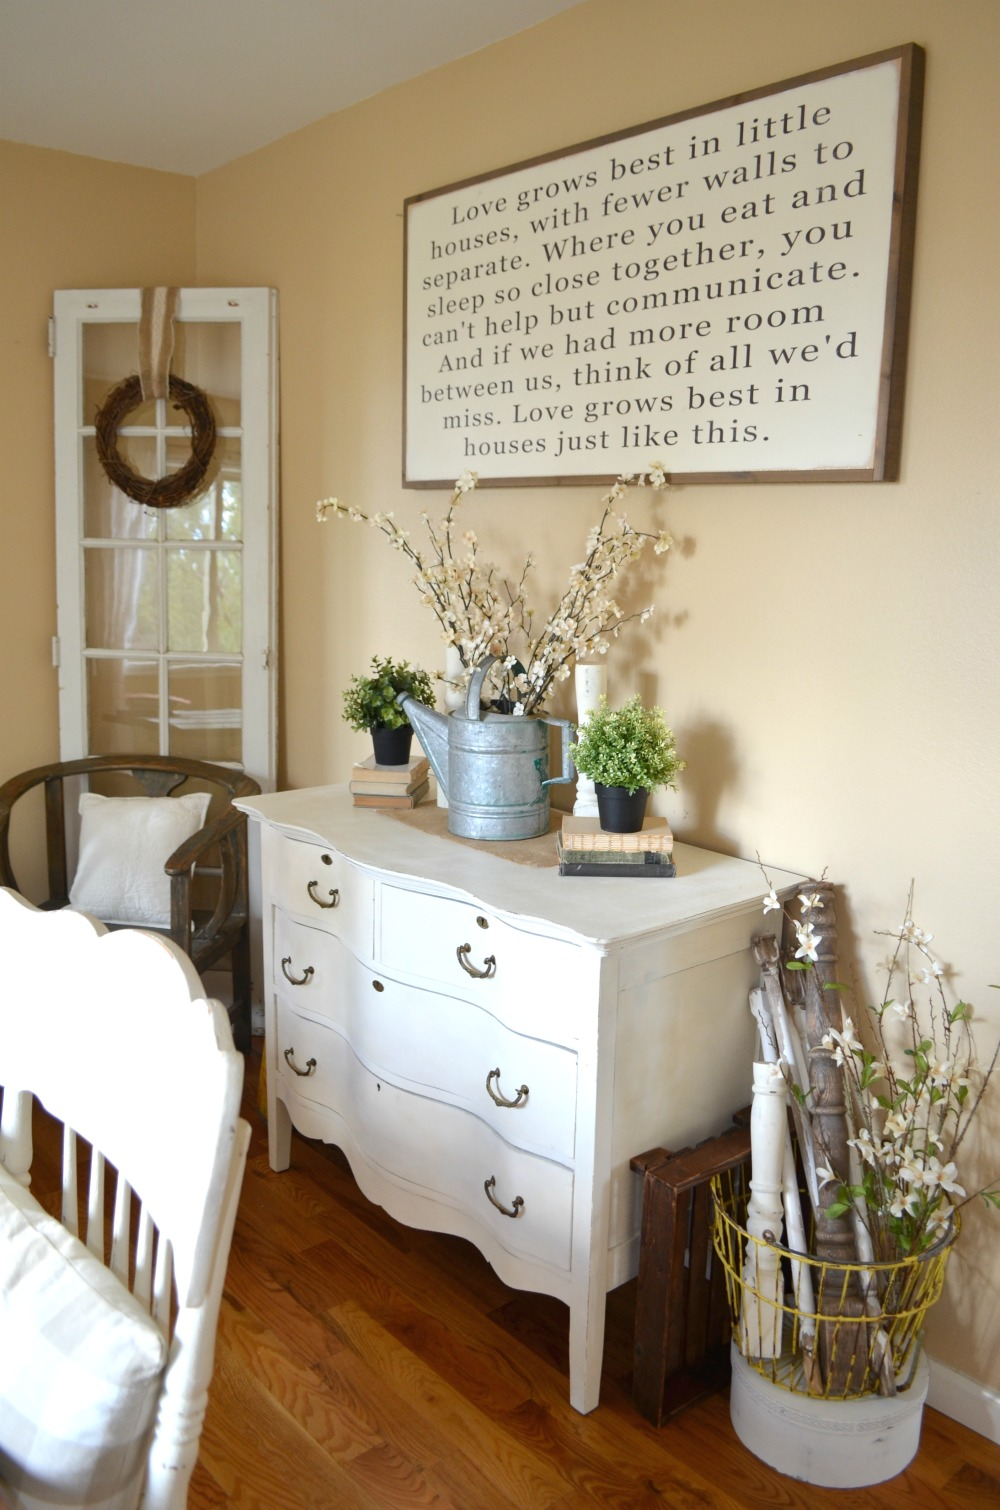 Love Grows Best in Little Houses Sign - Little Vintage Nest on Farmhouse Dining Room Curtains  id=42131